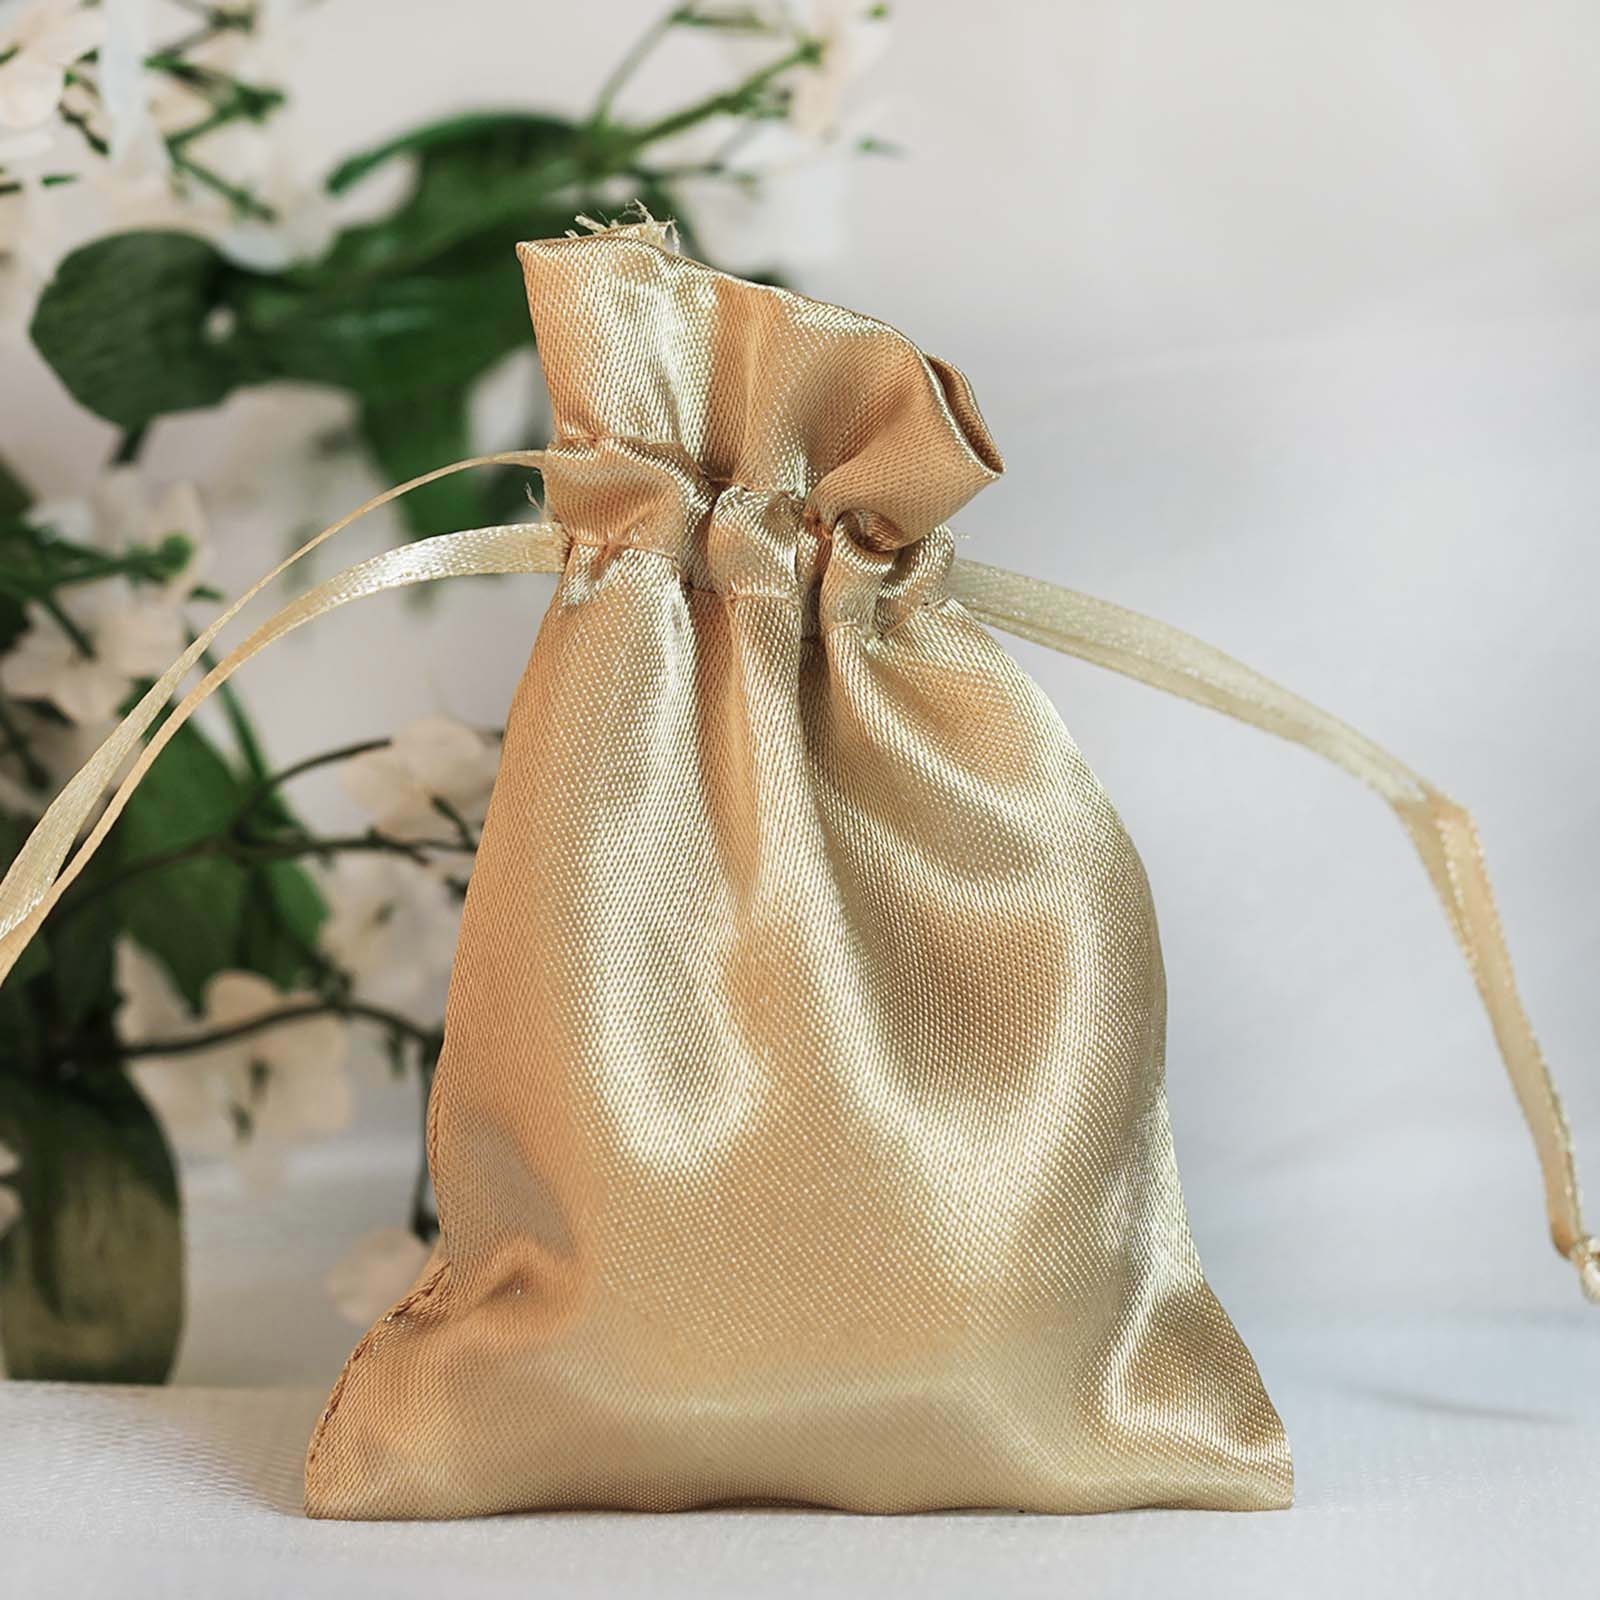 Wedding Favor Bags Wholesale : ... SATIN FAVOR BAGS Wedding Party Reception Gift Favors WHOLESALE eBay